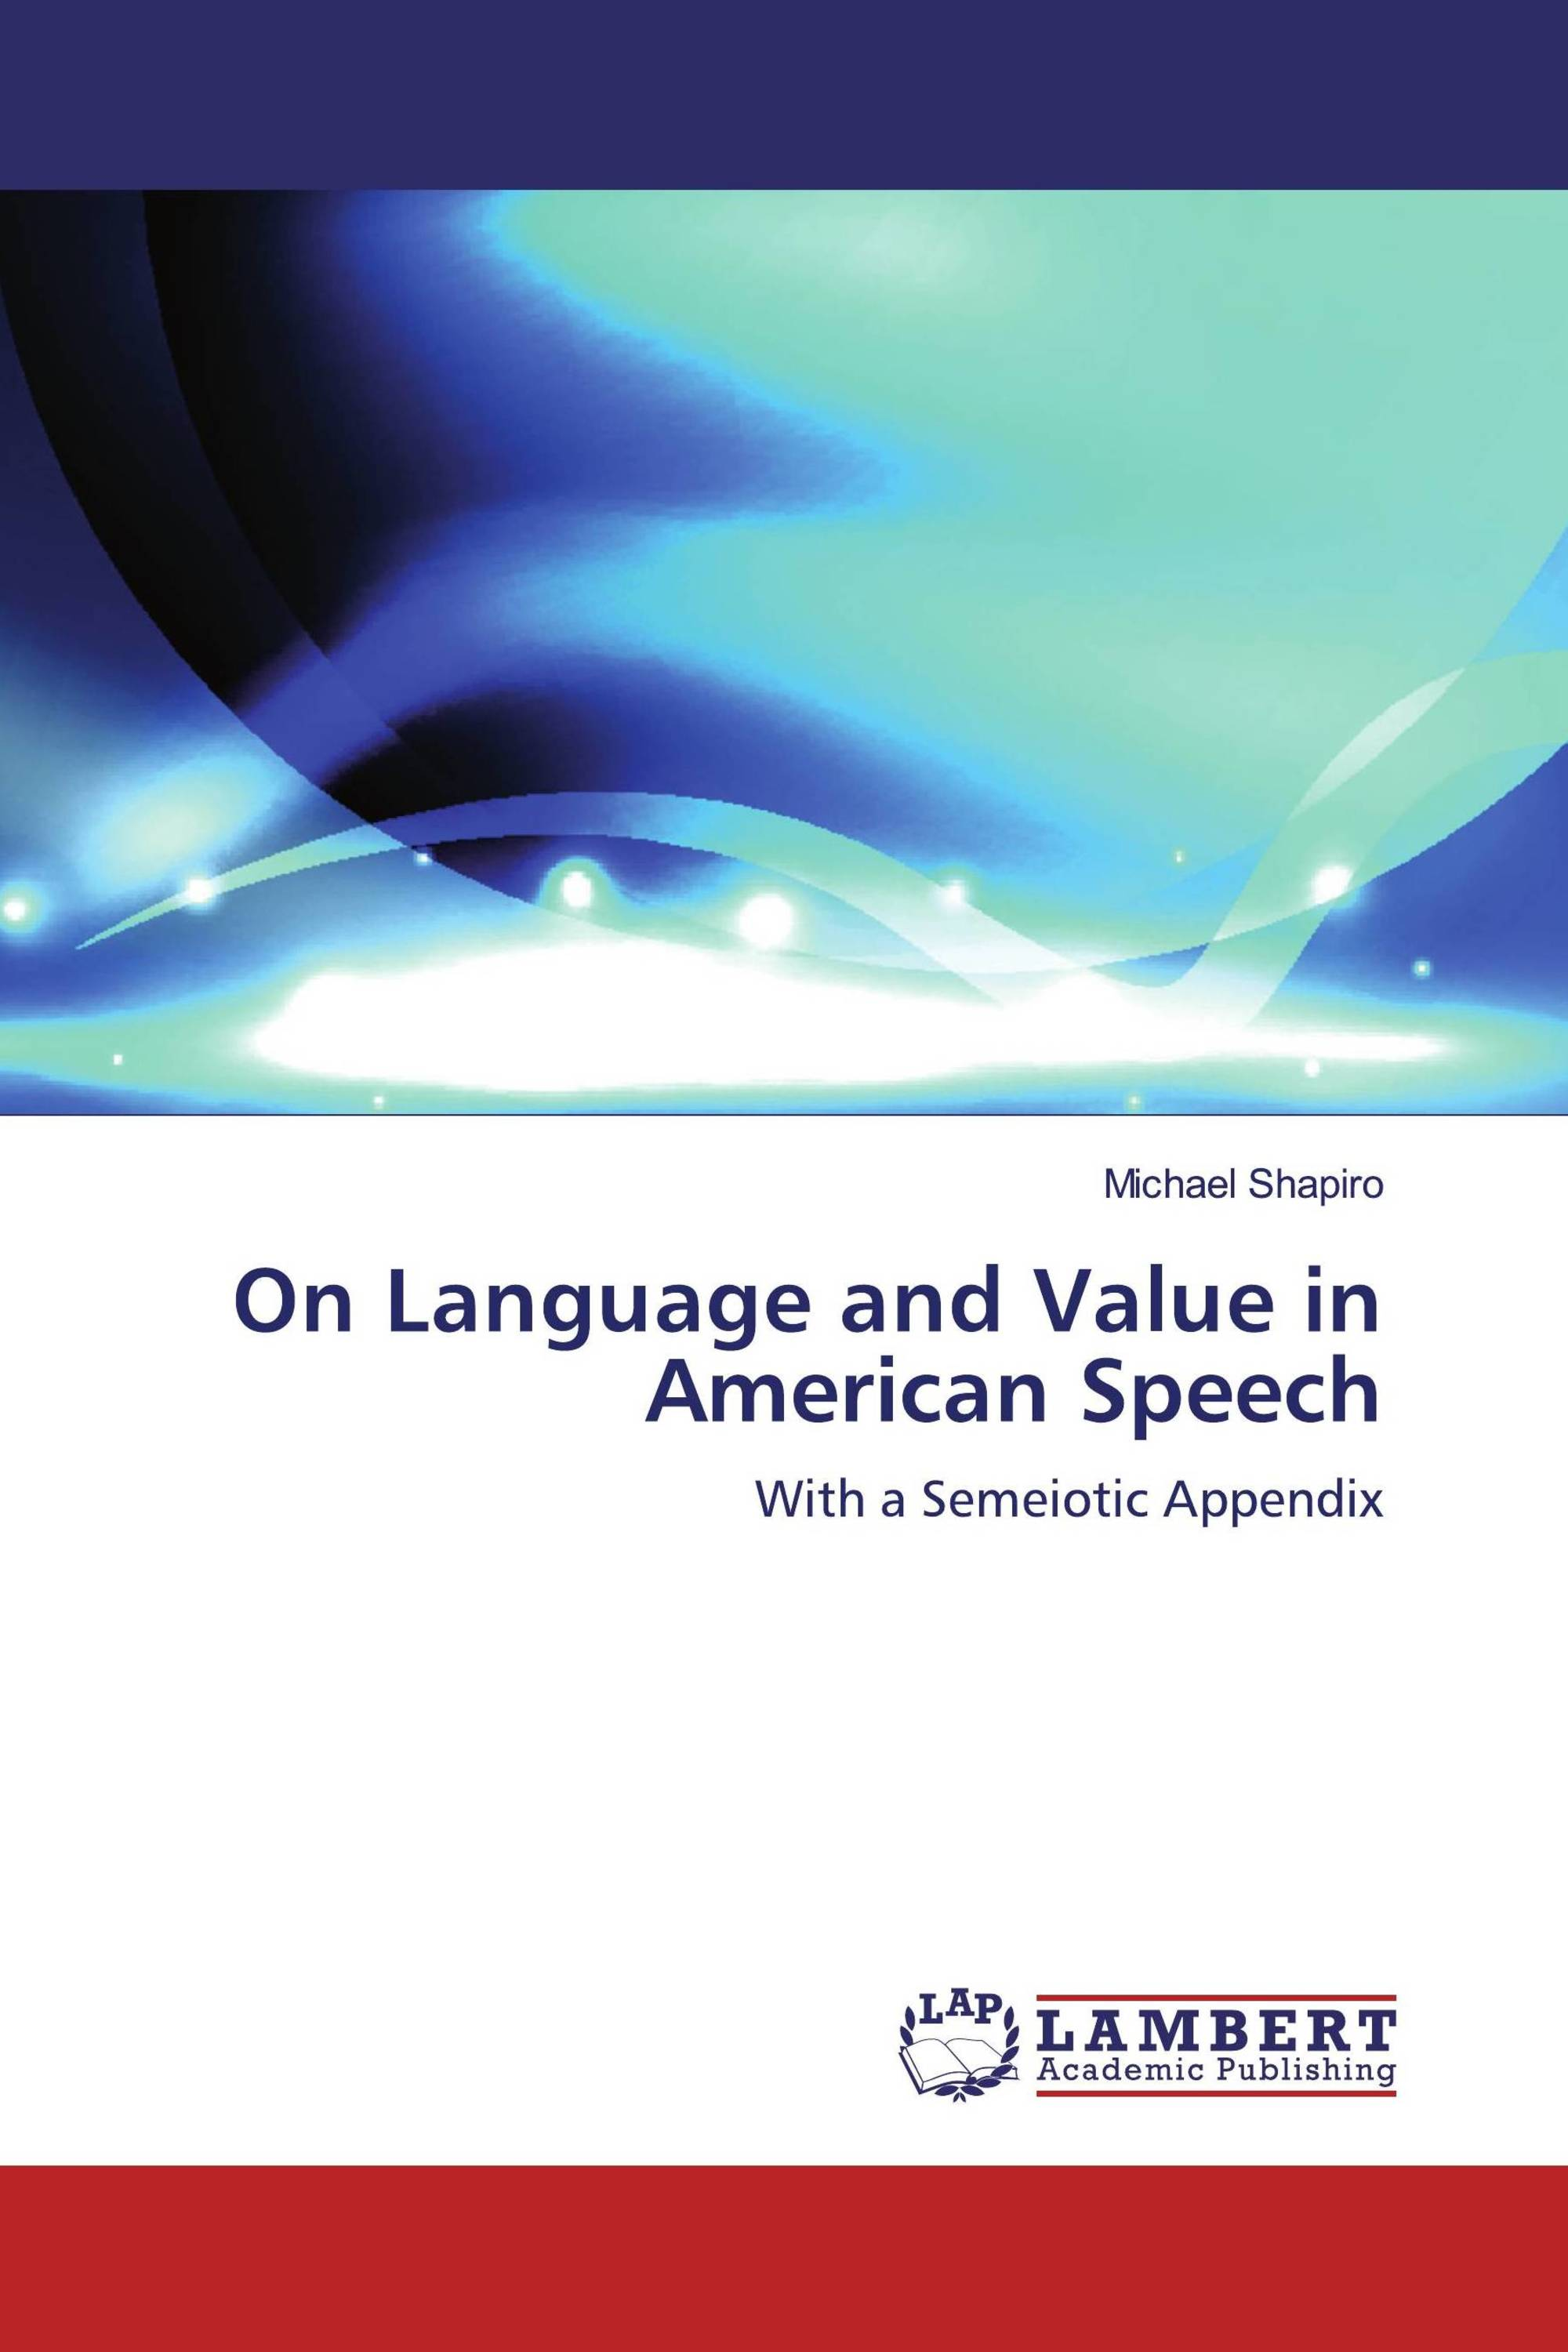 On Language and Value in American Speech